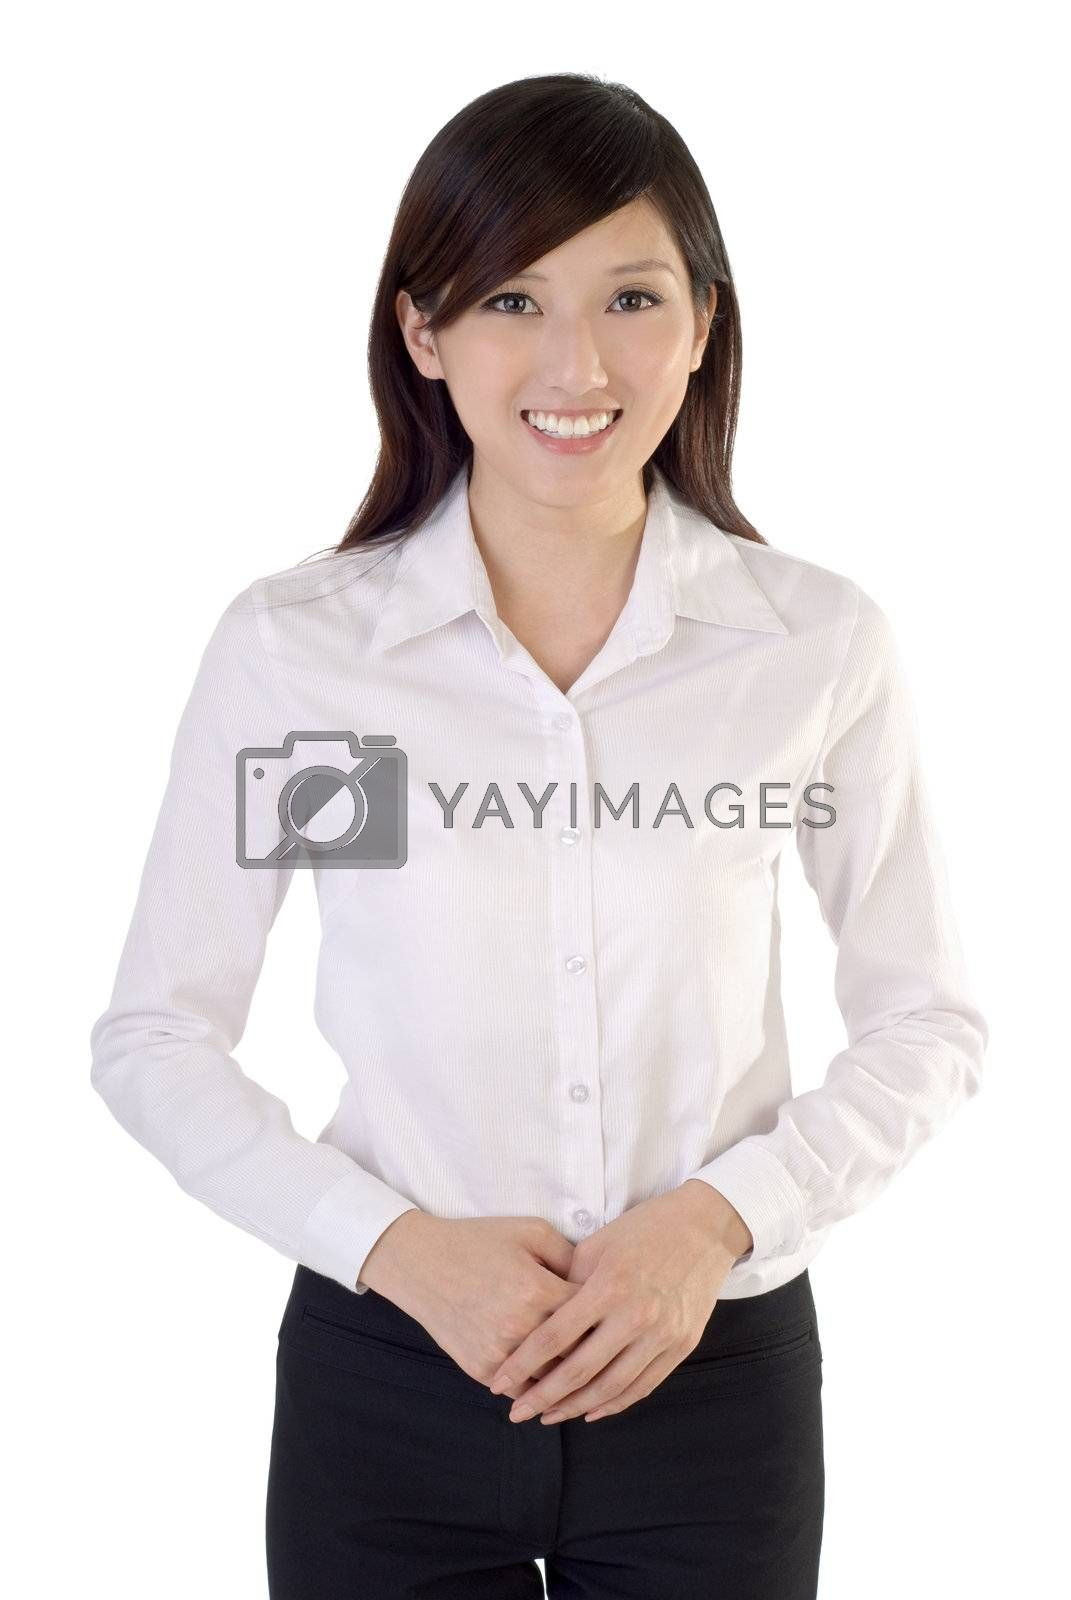 Royalty free image of Friendly young business woman by elwynn